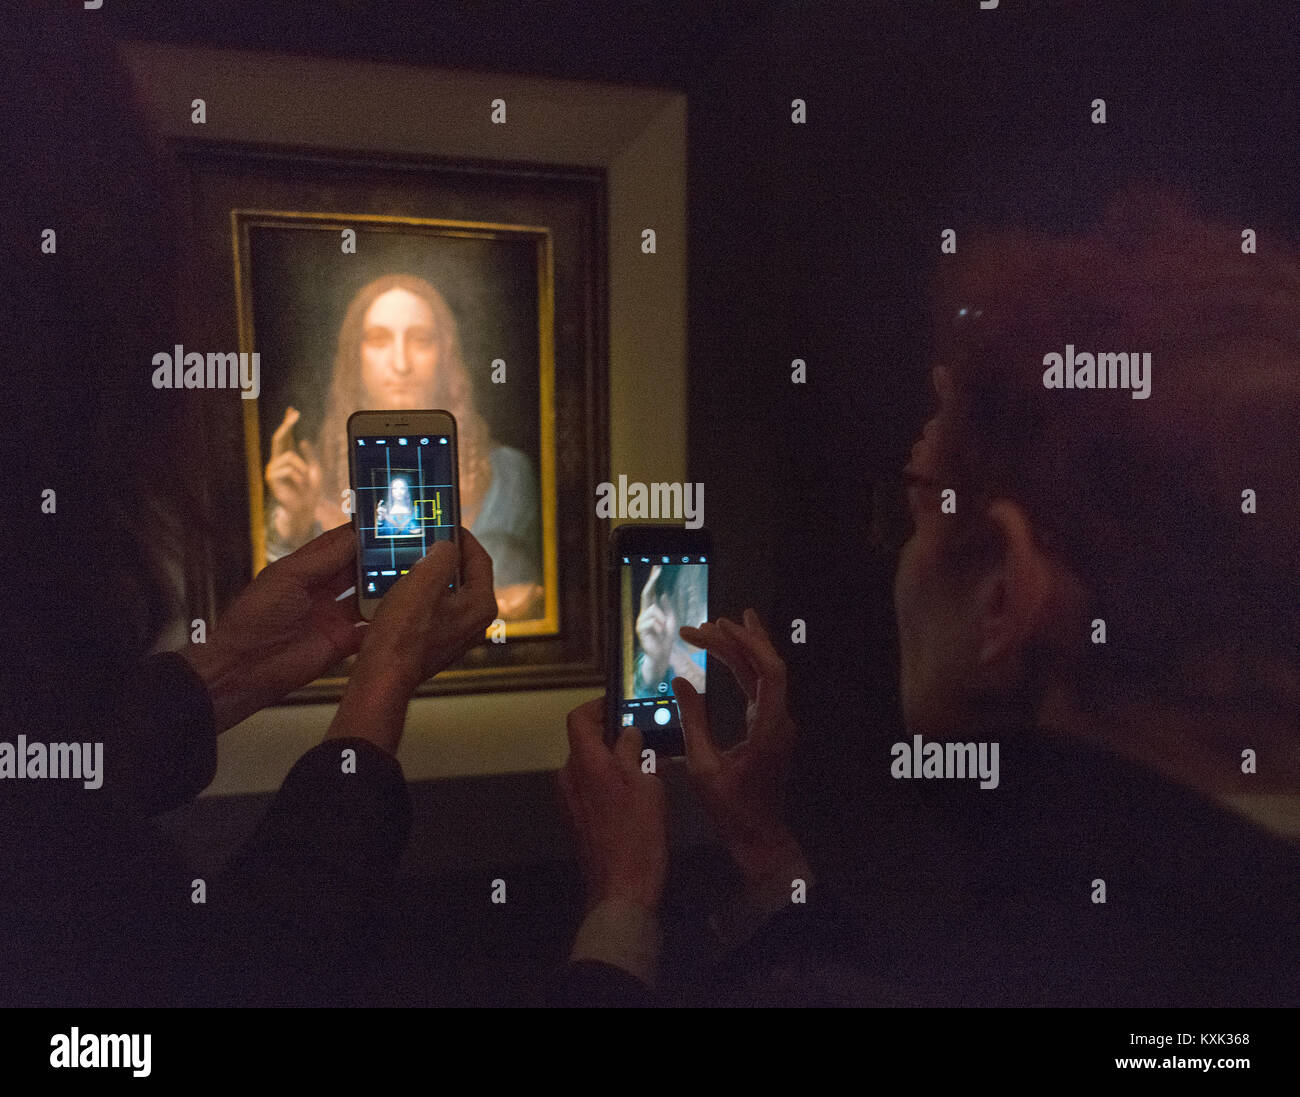 People taking picture of the Leonardo di Vinci Salvator Mundi on display at Christie's in New York City. - Stock Image